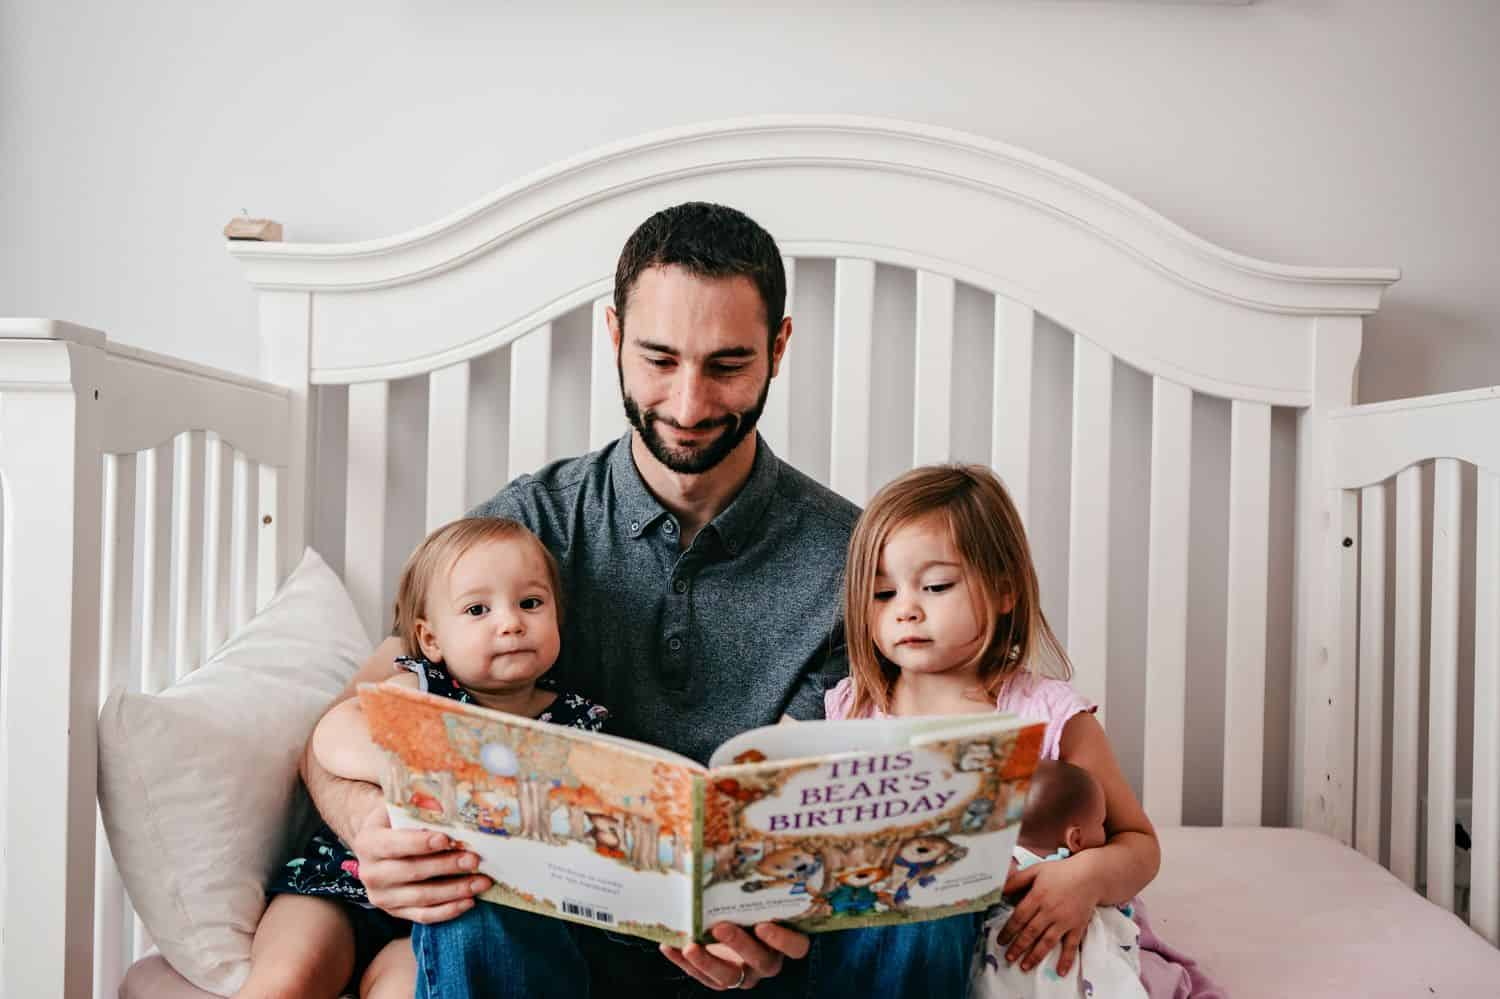 Dad reads a book to his two little daughters.